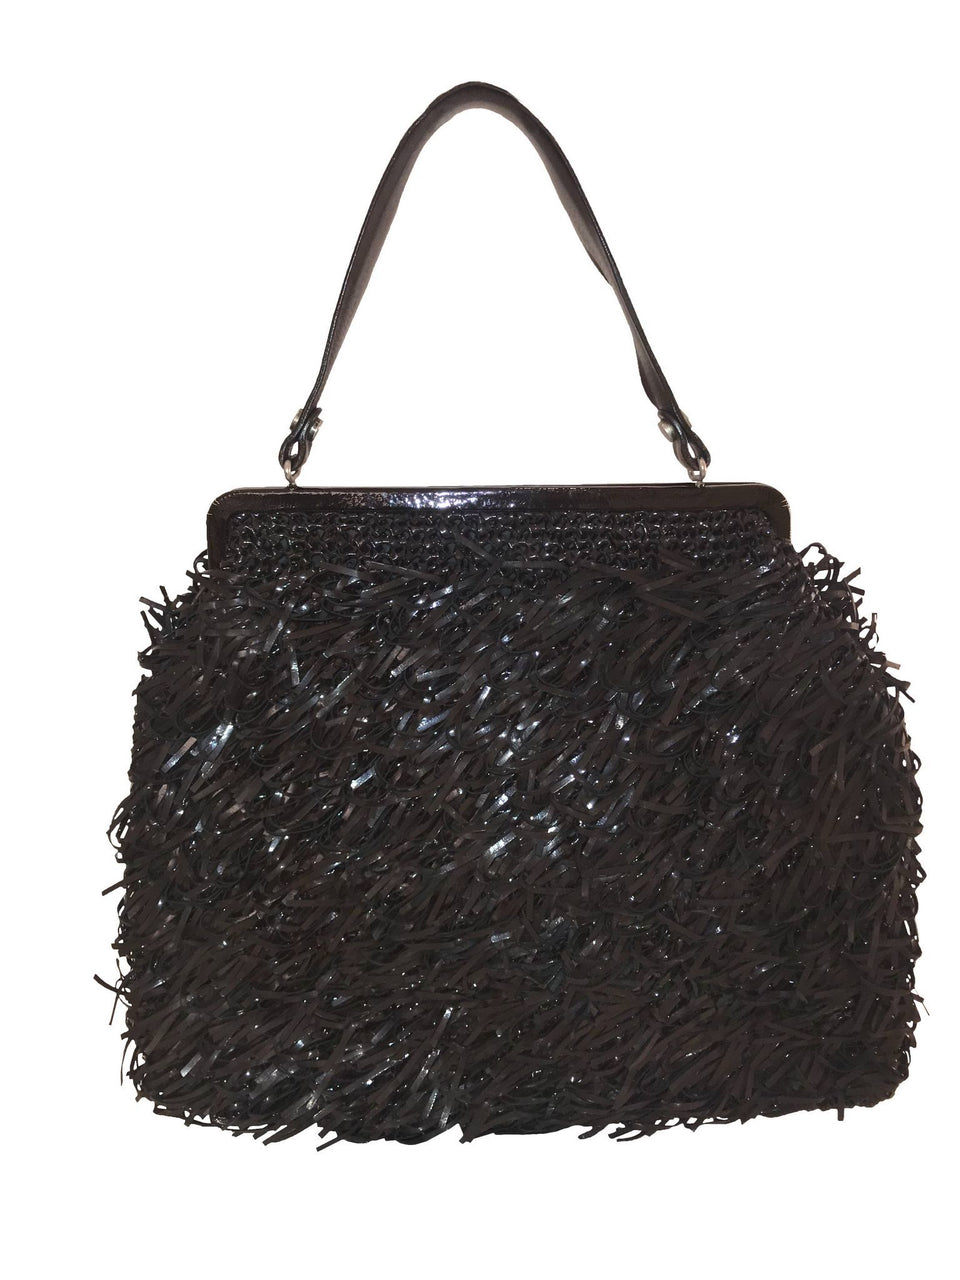 Brown Patent Fringe Handbag